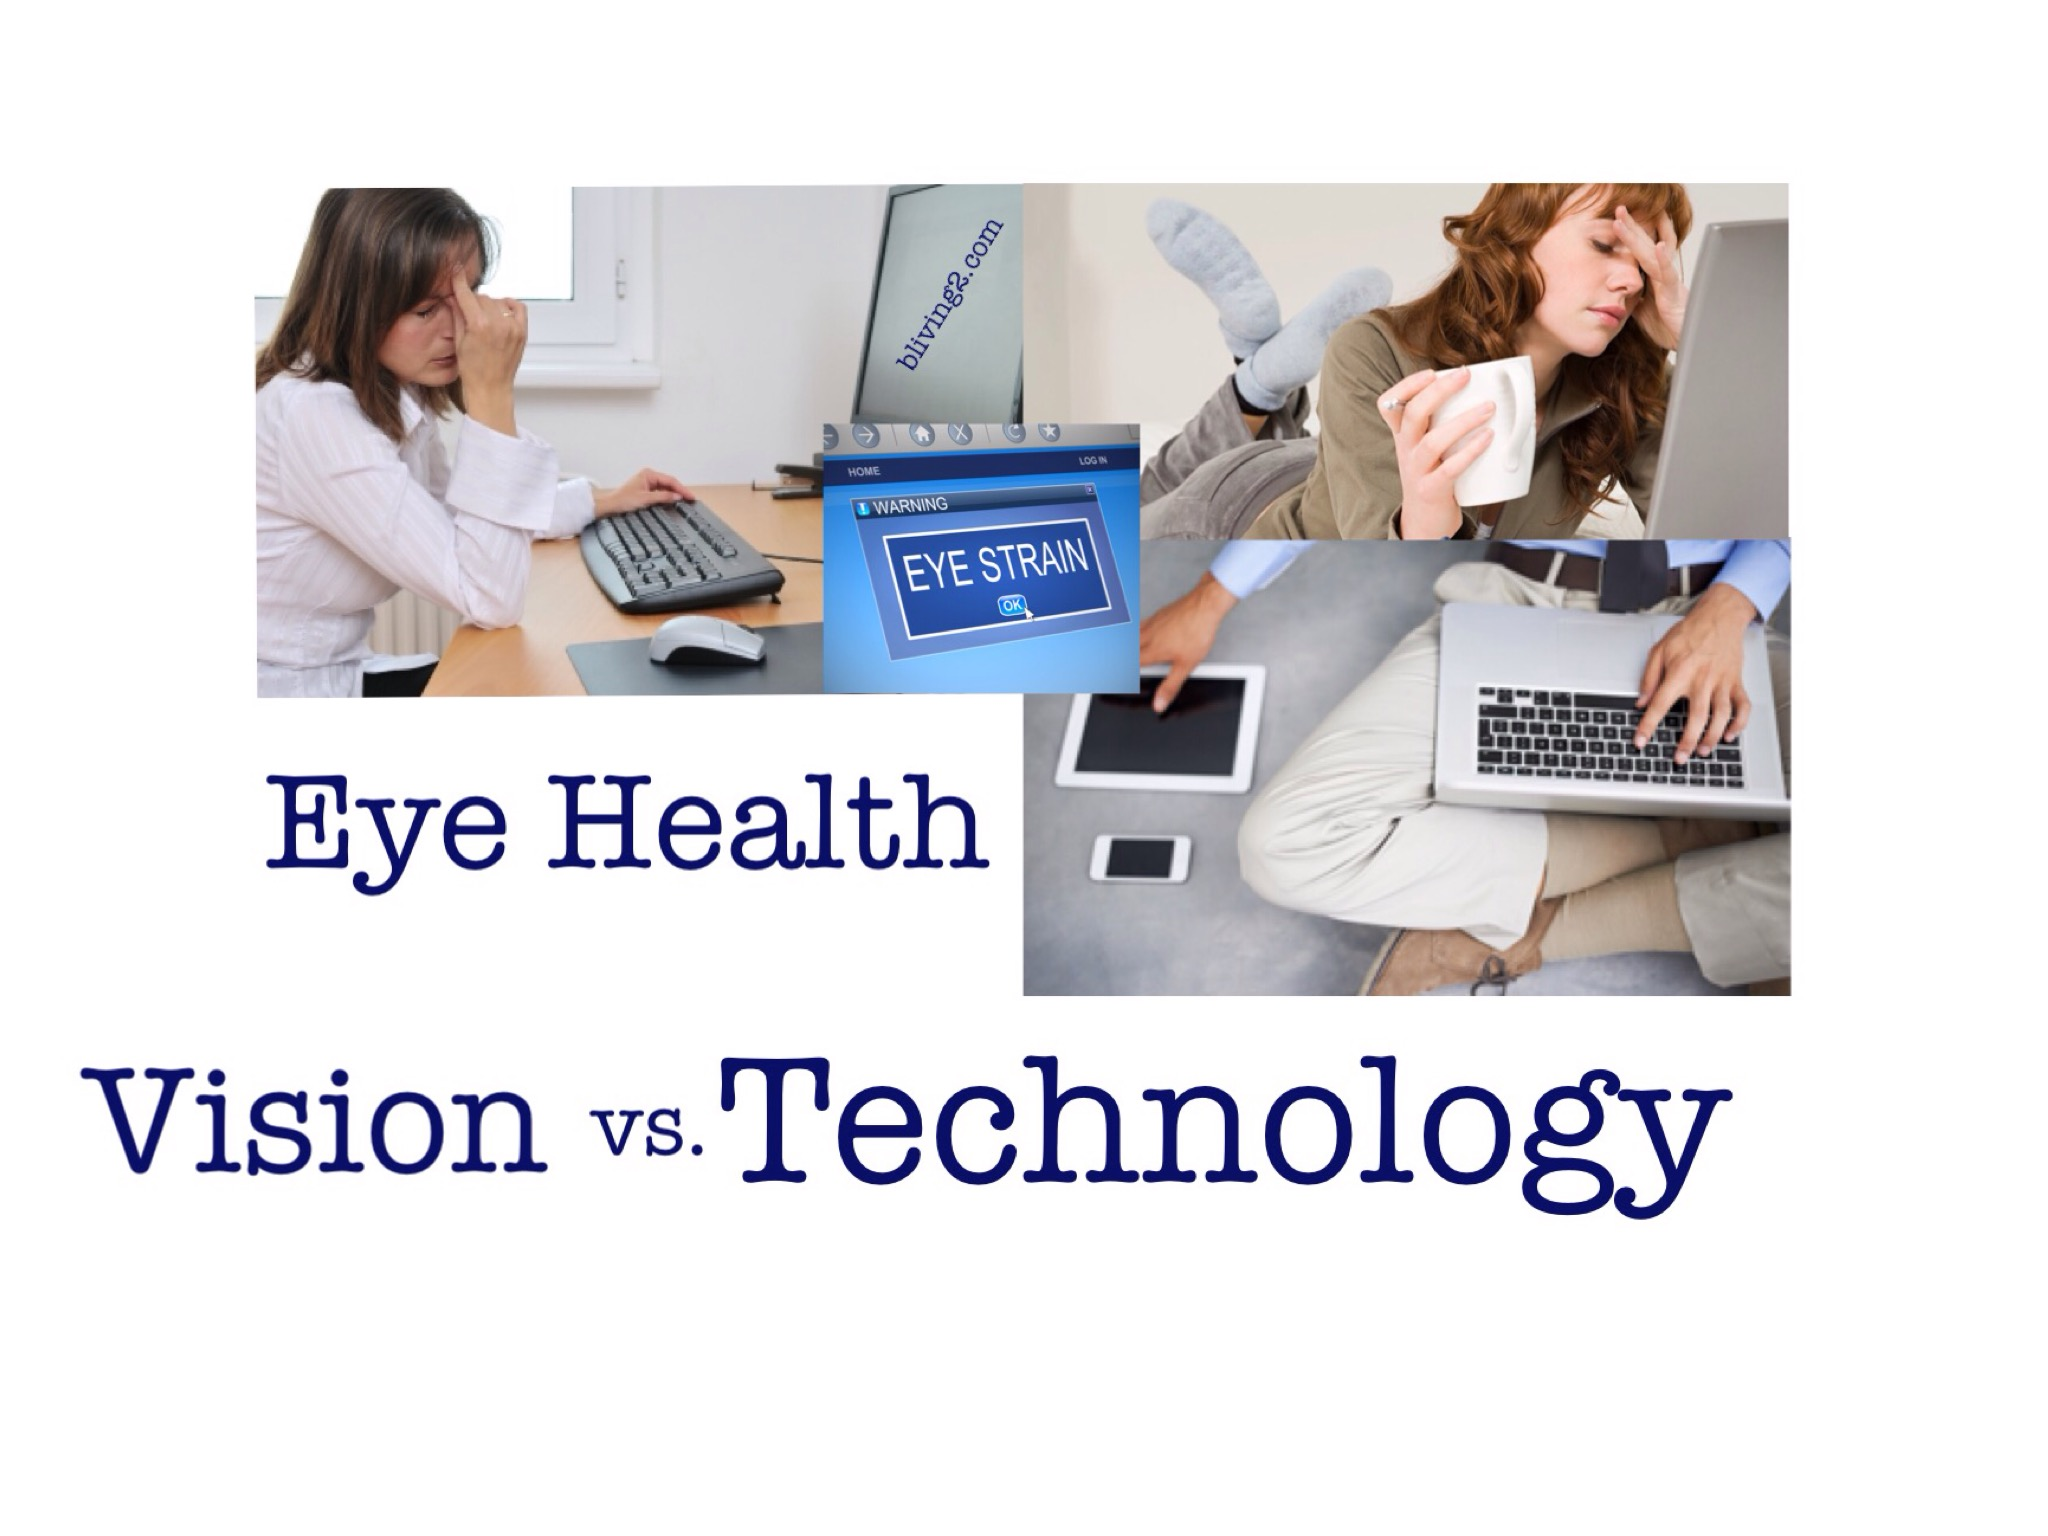 Eye Health Vision Vs Technology  Bliving2. Shipping Furniture Companies. Chemo Treatment For Breast Cancer. Going To College For Business. Comparison Of Insurance Companies. Computer Software Degrees Demo Share Trading. Rent Guarantee Insurance Alternative For Word. Los Angeles Trade Technical School. Criminal Psychology Requirements